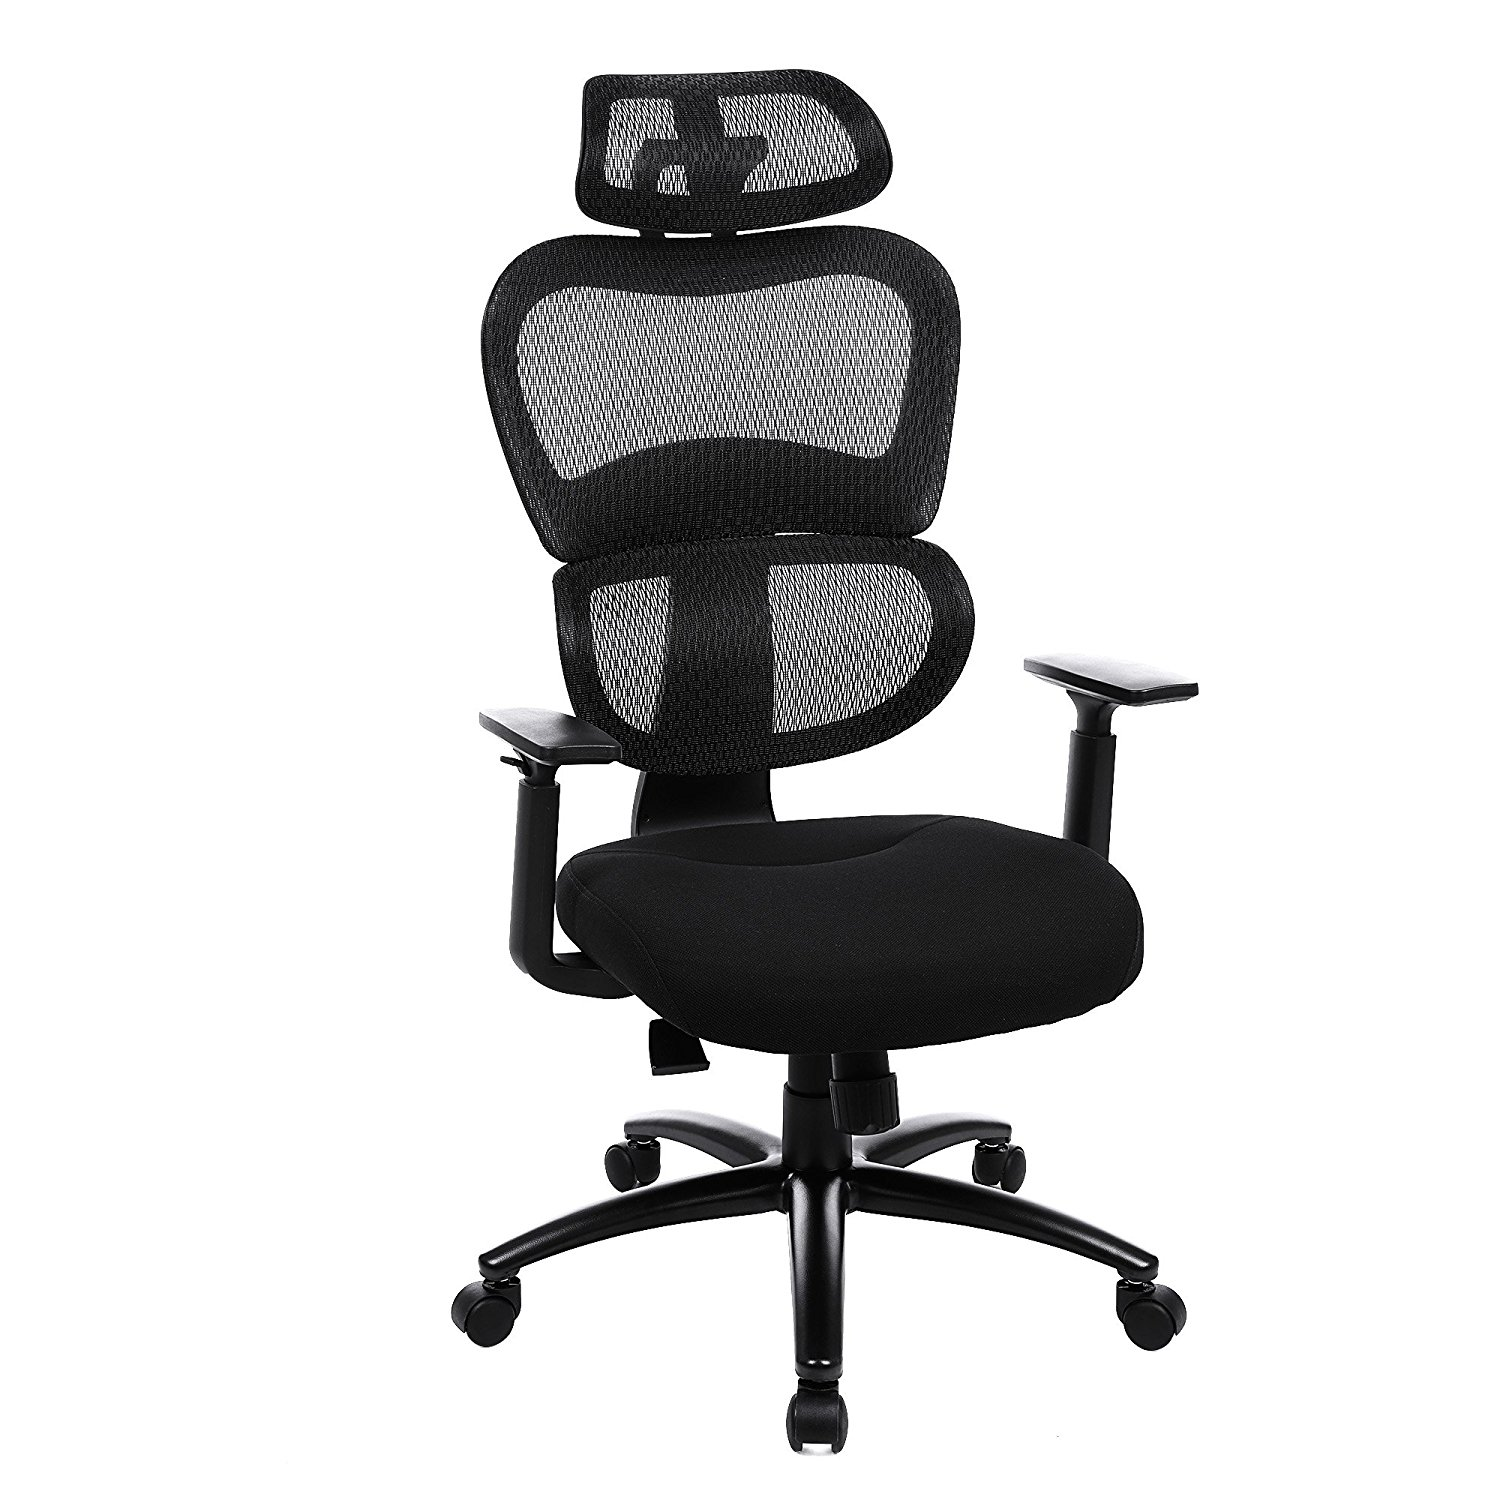 SONGMICS Ergonomic Mesh Office Chair, Swivel Desk Chair, with Lumbar Support, Adjustable Headrest and Armrests, Back Reclining and Tilt Lock Function, Black UOBN89BK